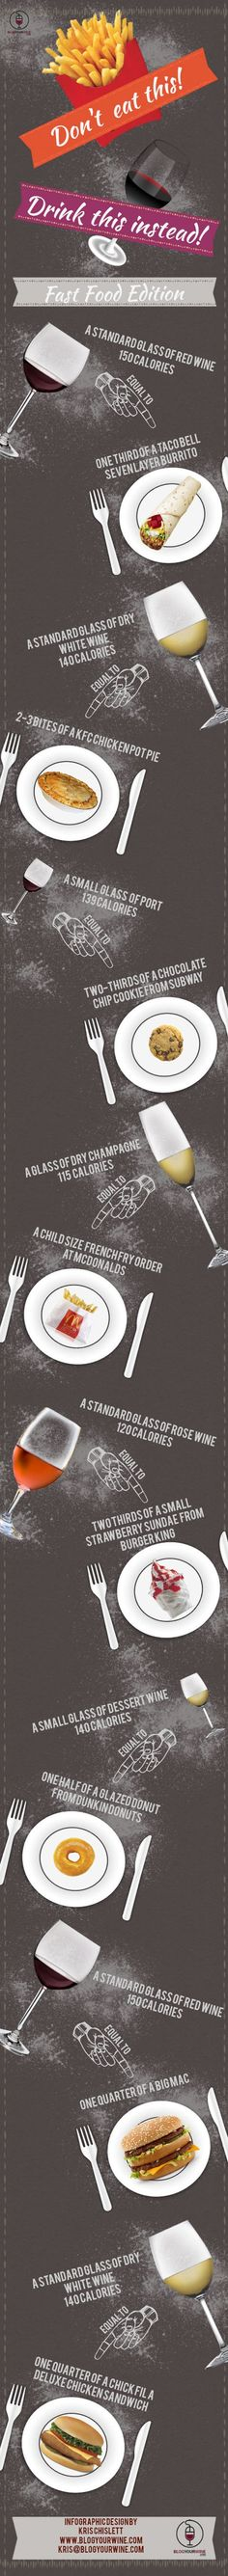 Don't Eat This! Drink This Instead! – Fast Food Edition Infographic